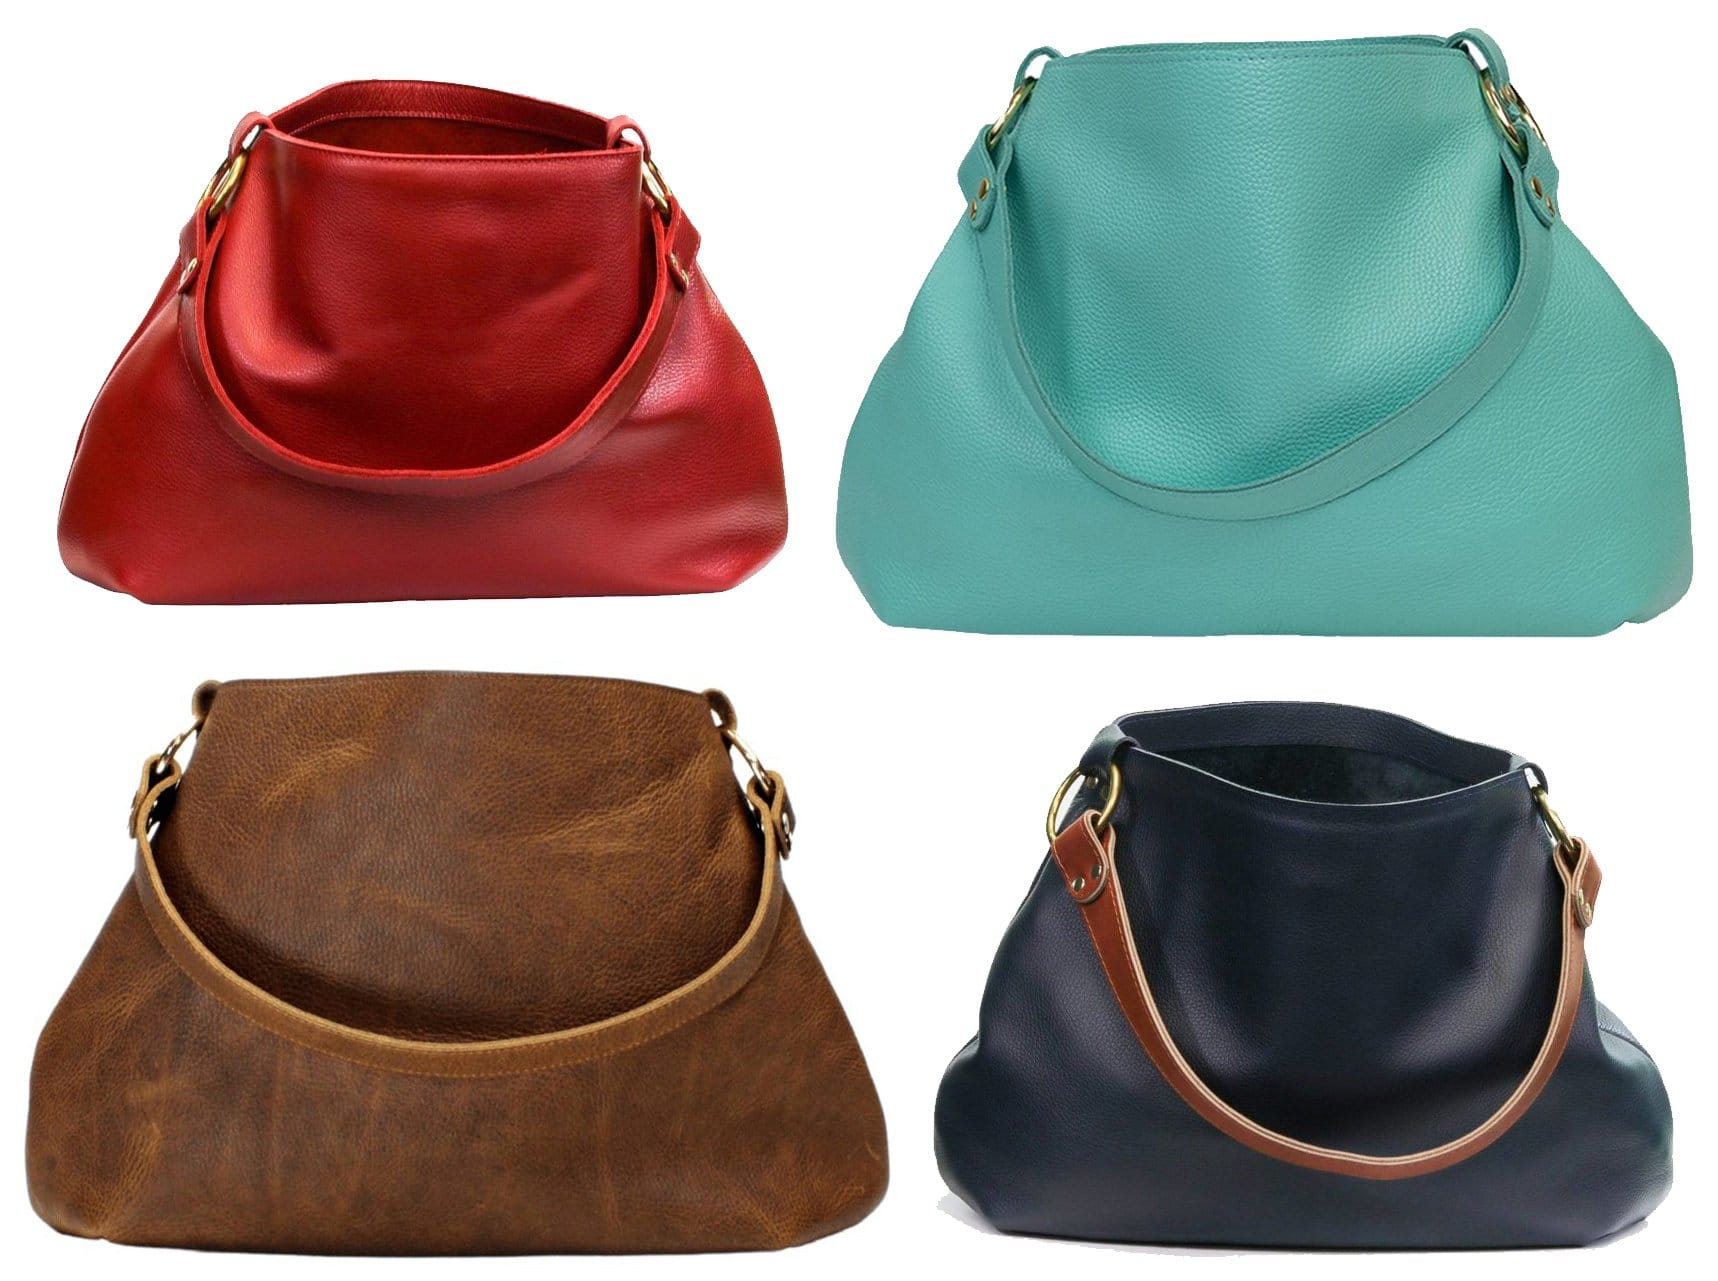 It is available in several colors, from neutrals to vibrant seasonal shades